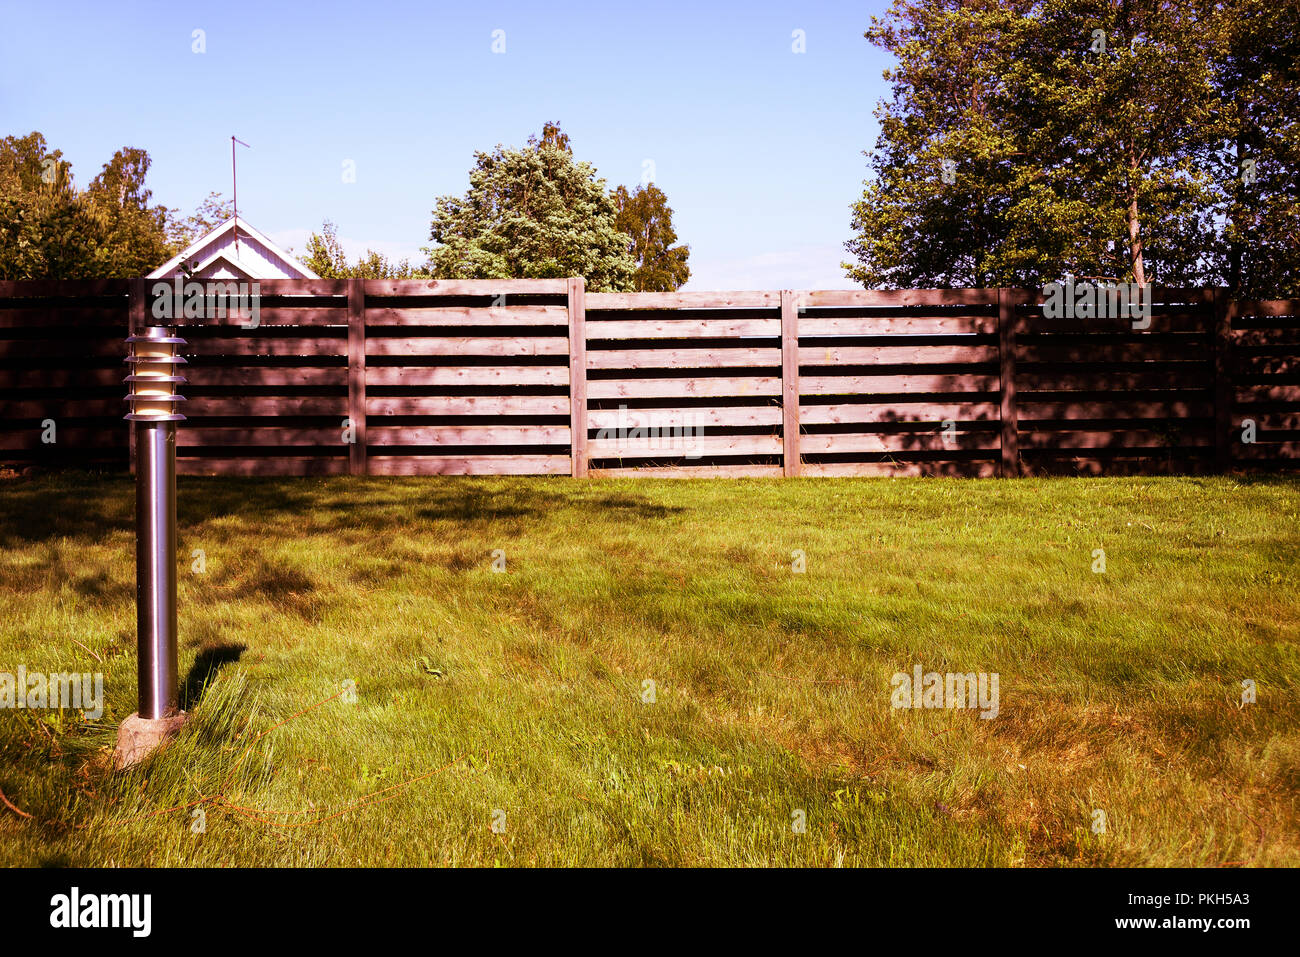 lantern, green lawn and fence, photo filter, deadpan - Stock Image